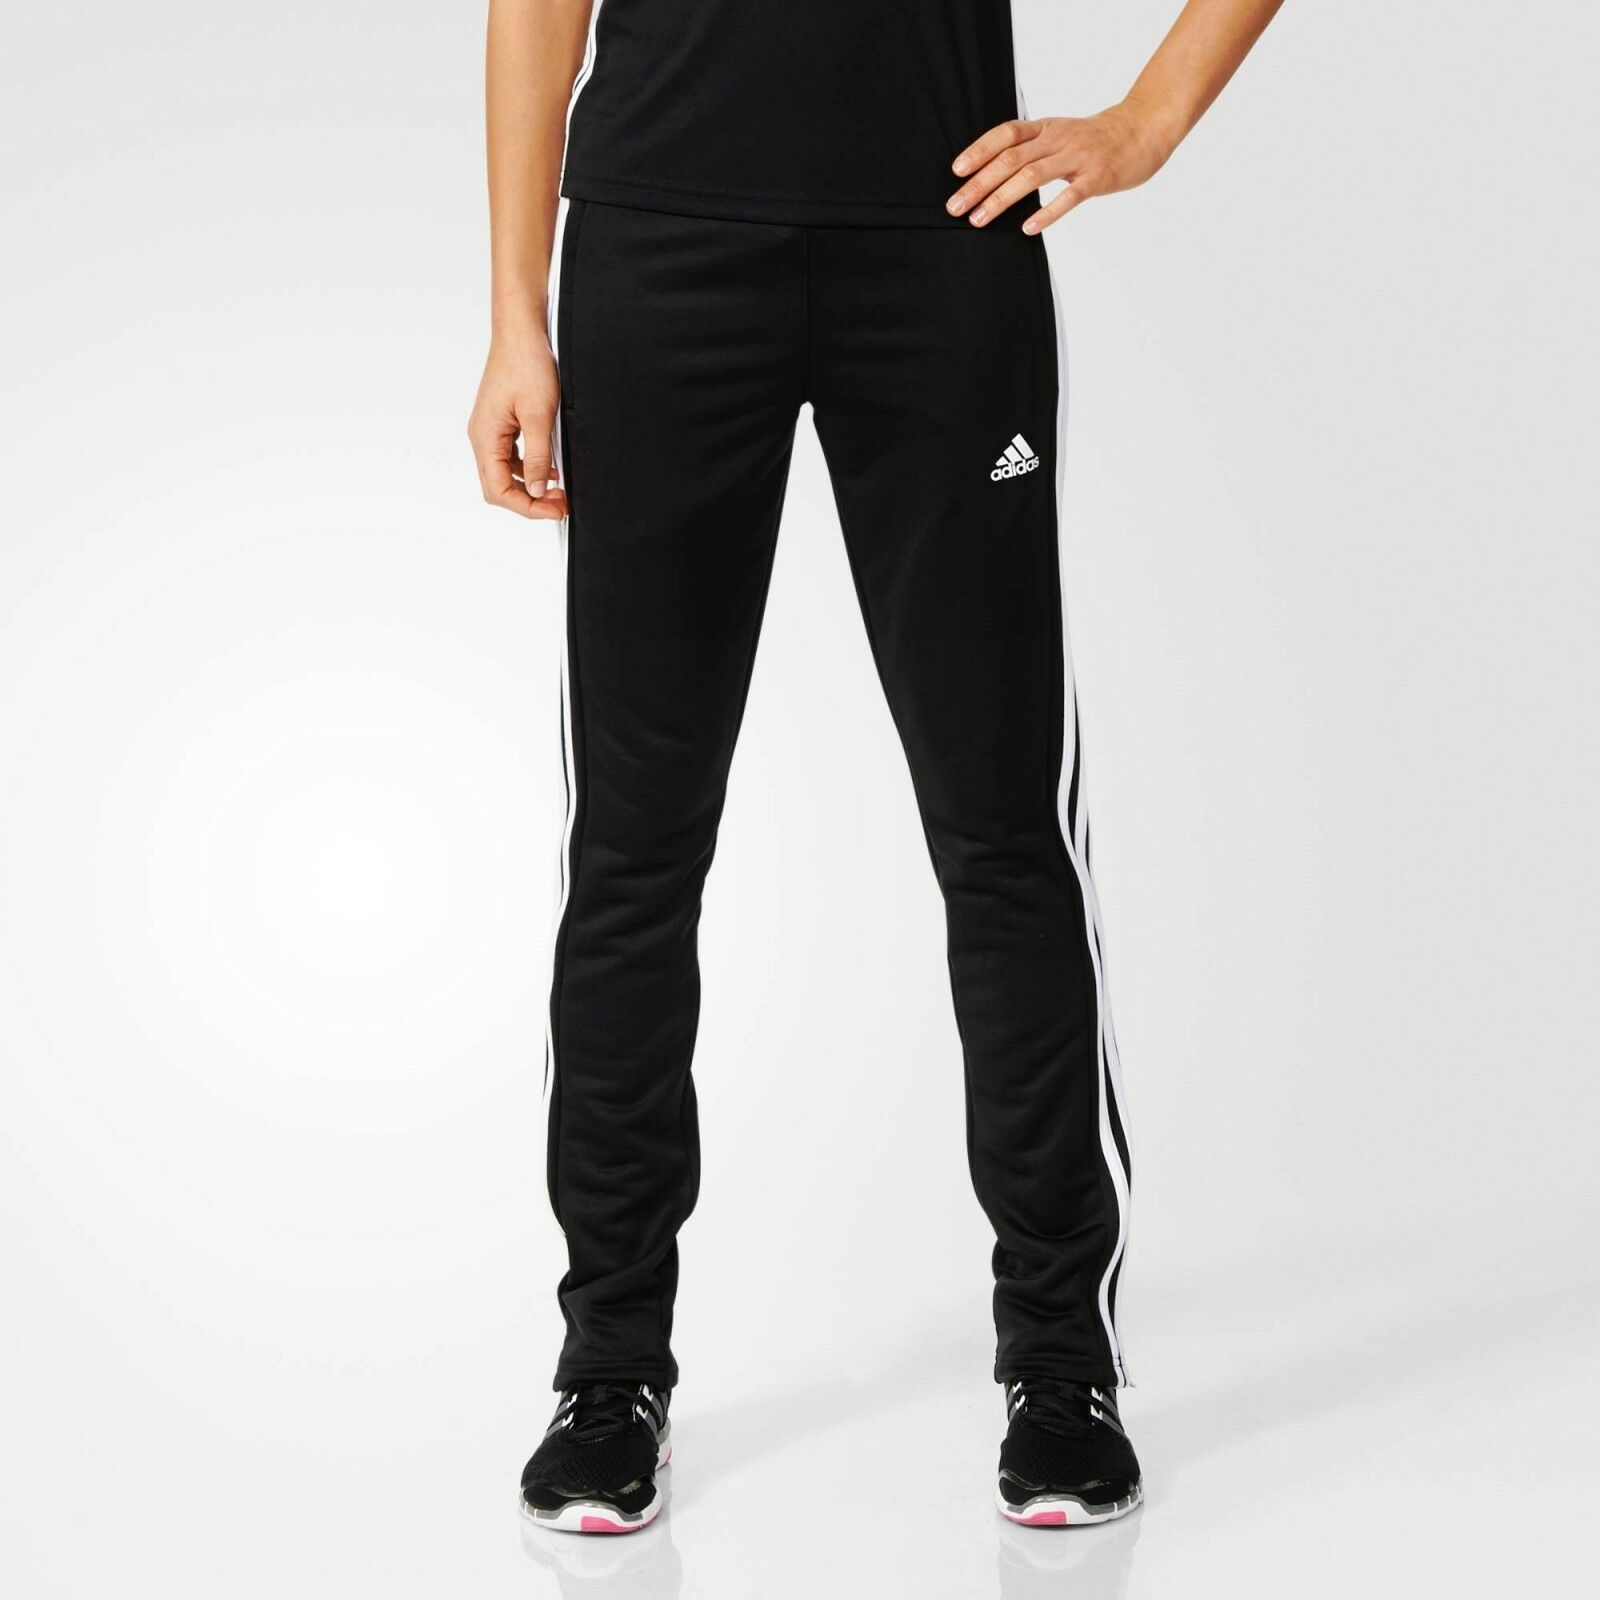 2d6ce977 adidas Ladies T16 CLIMALITE Sweat Pants Womens Sports Running Tracksuit  Bottoms   eBay